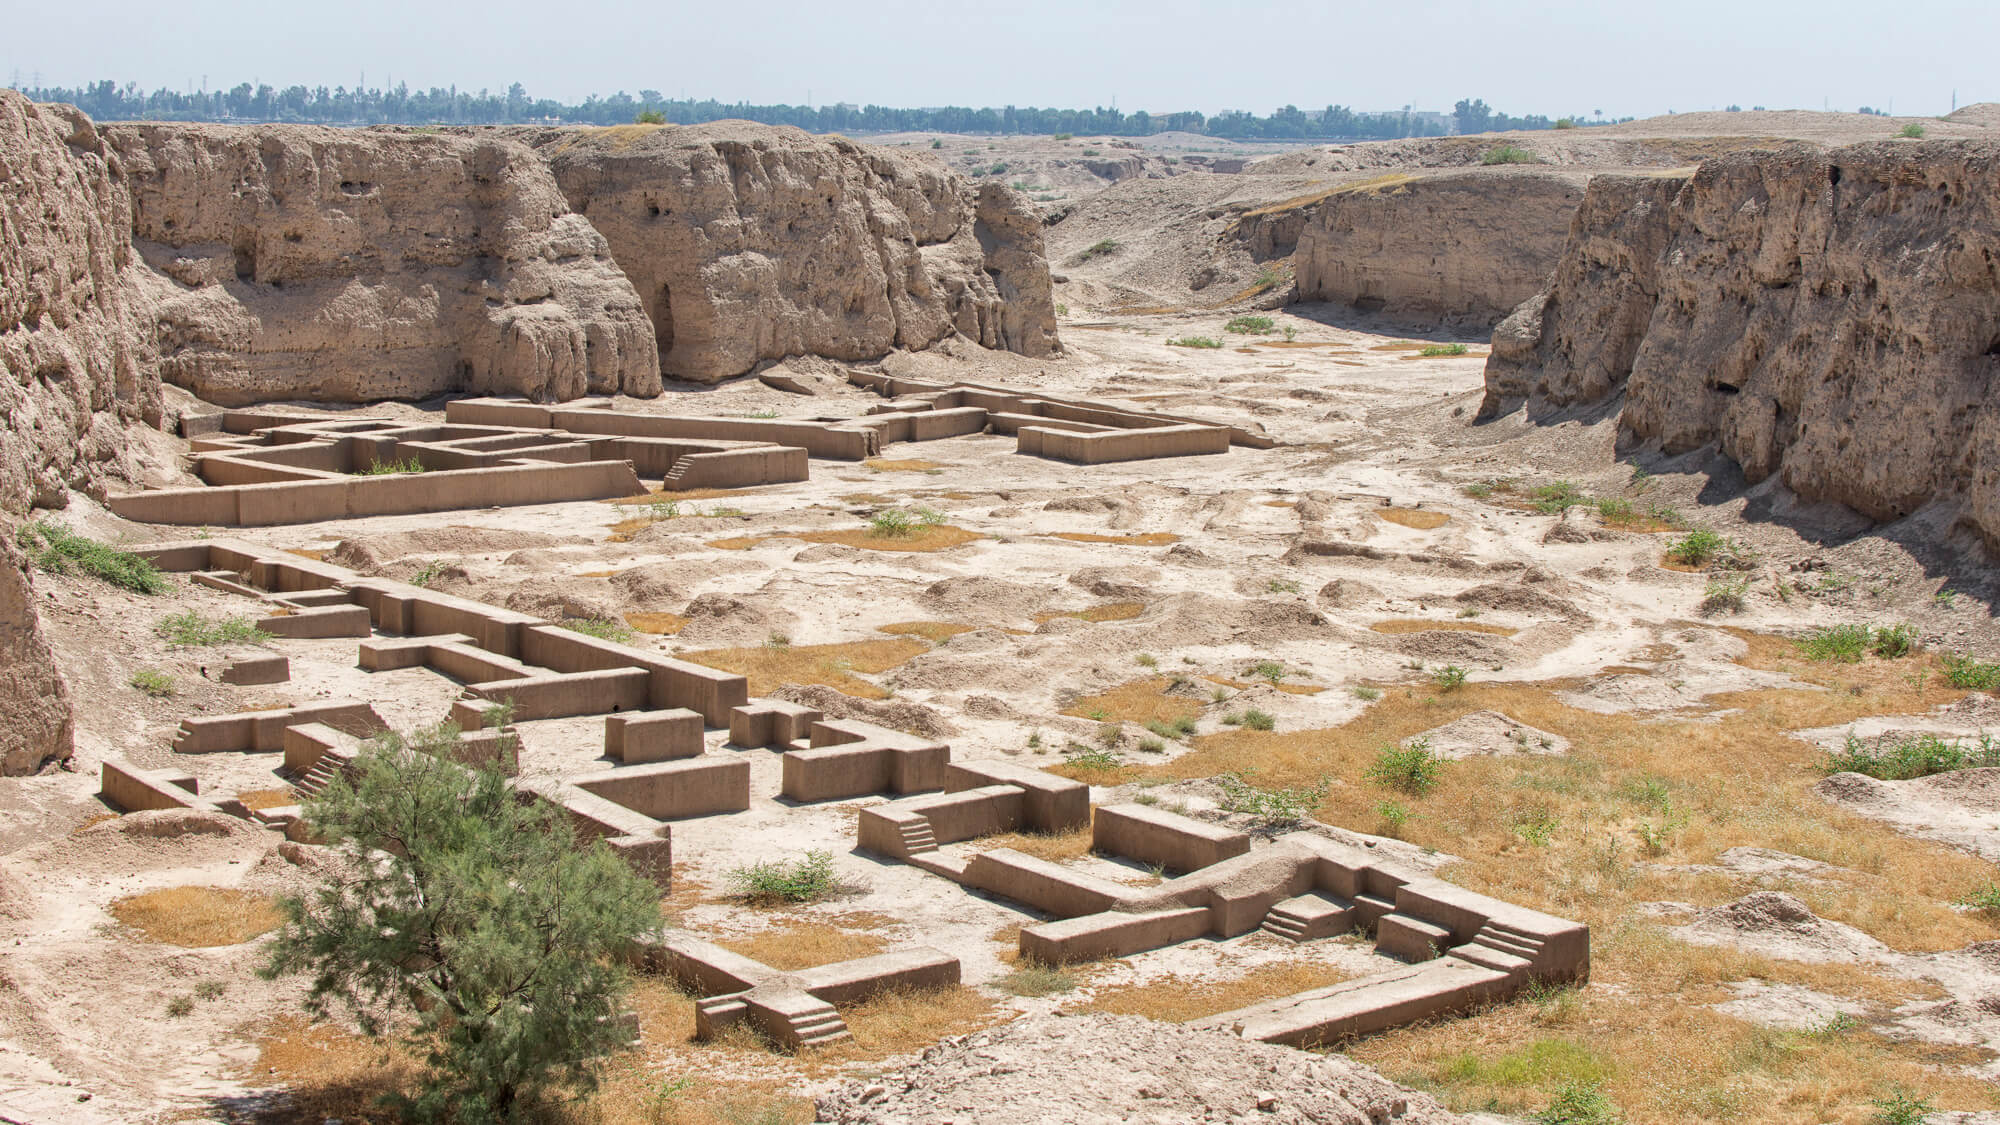 The other ancient Iran